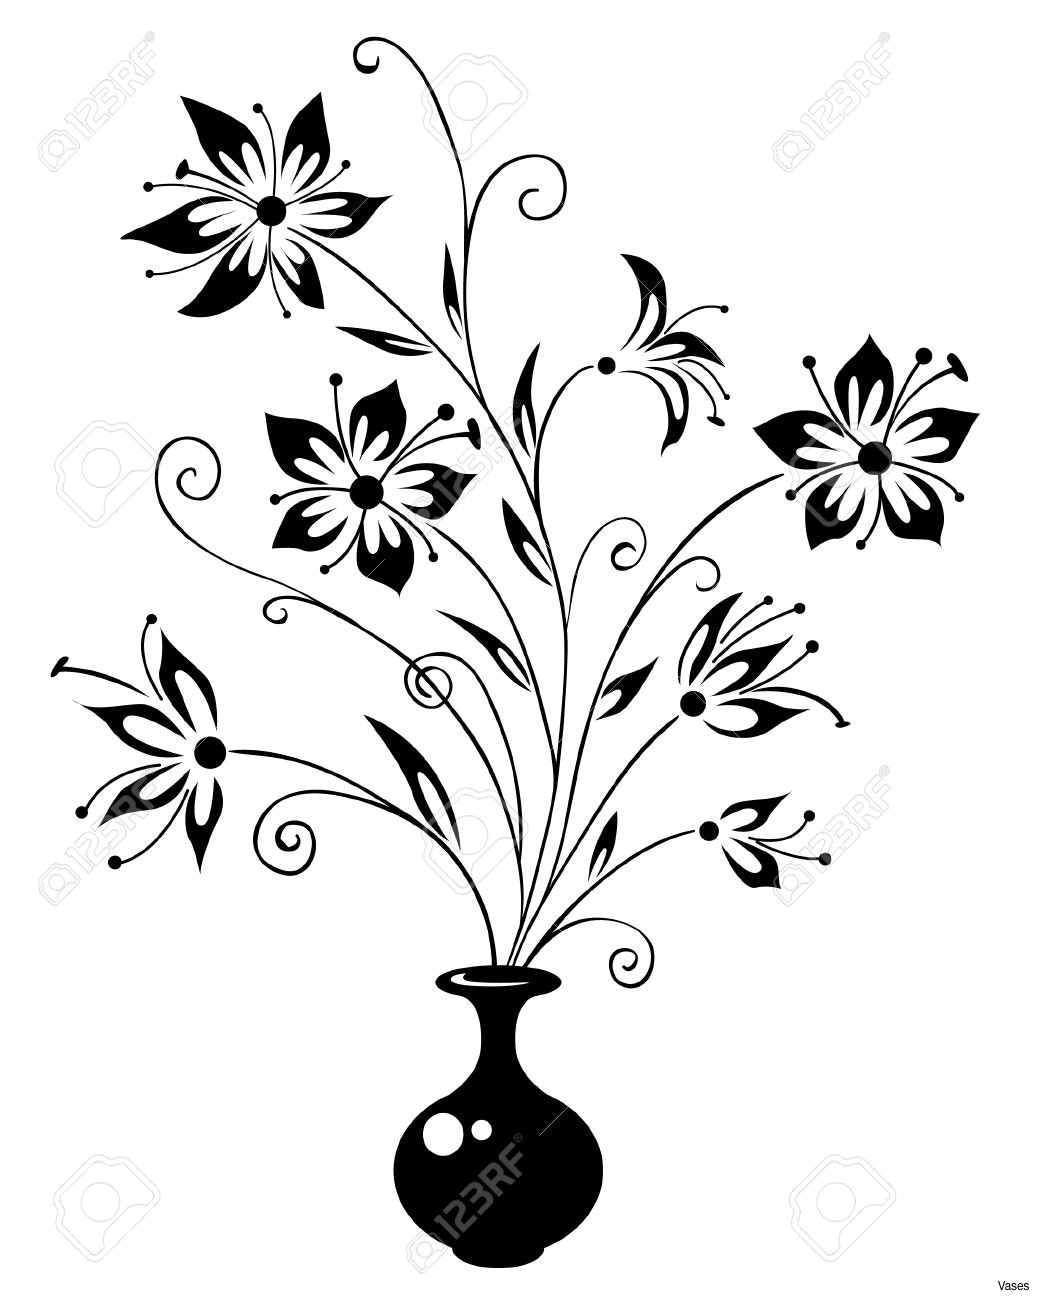 1040x1300 Vases Pencil Drawing Flower Vase Incoming H4 Art Images Flowers